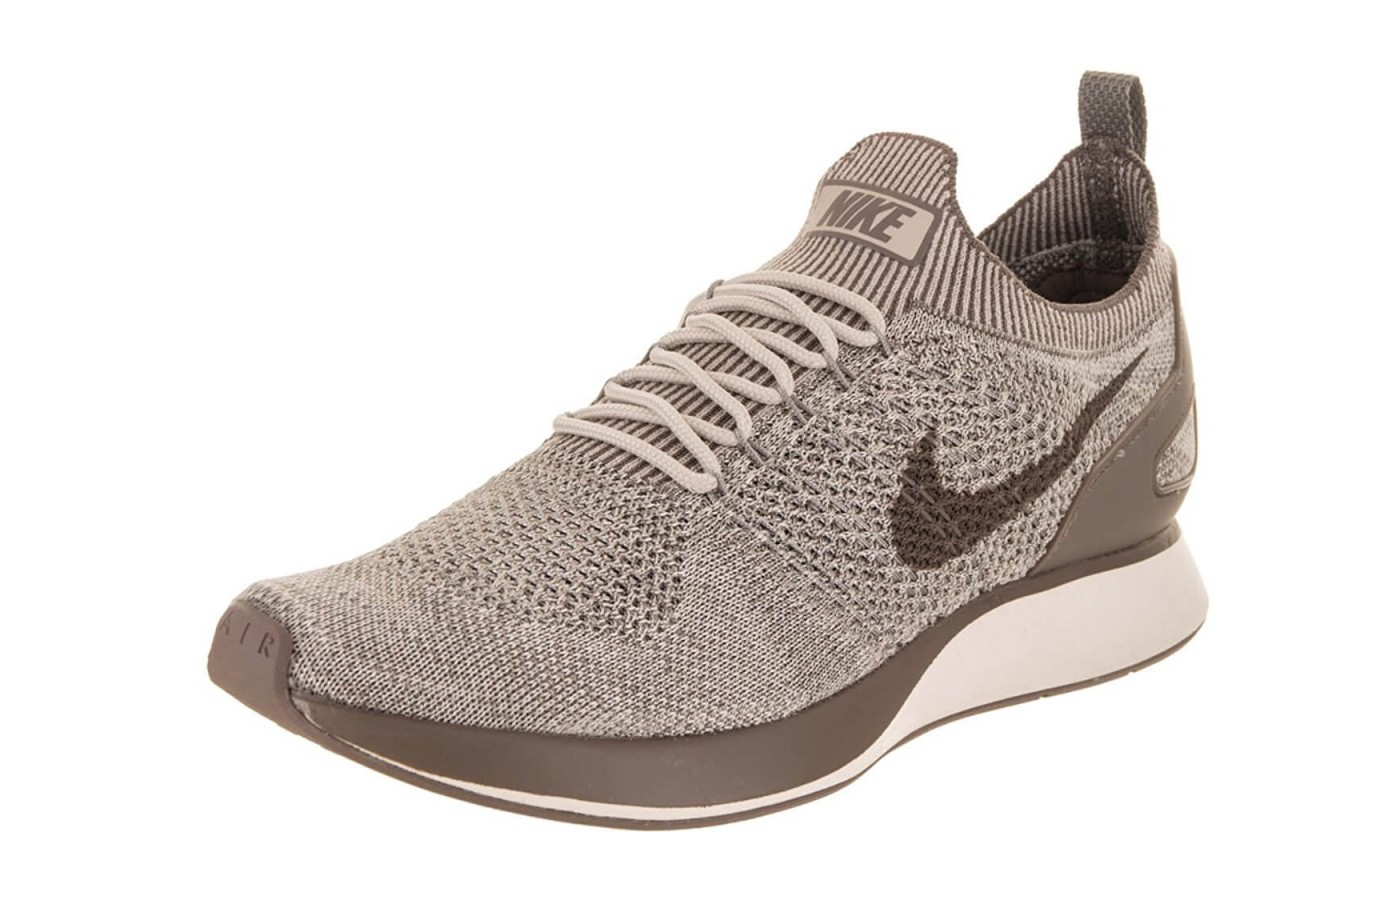 bd685cc868201 The Nike Air Zoom Mariah Flyknit Racer features a breathable Flyknit upper  ...